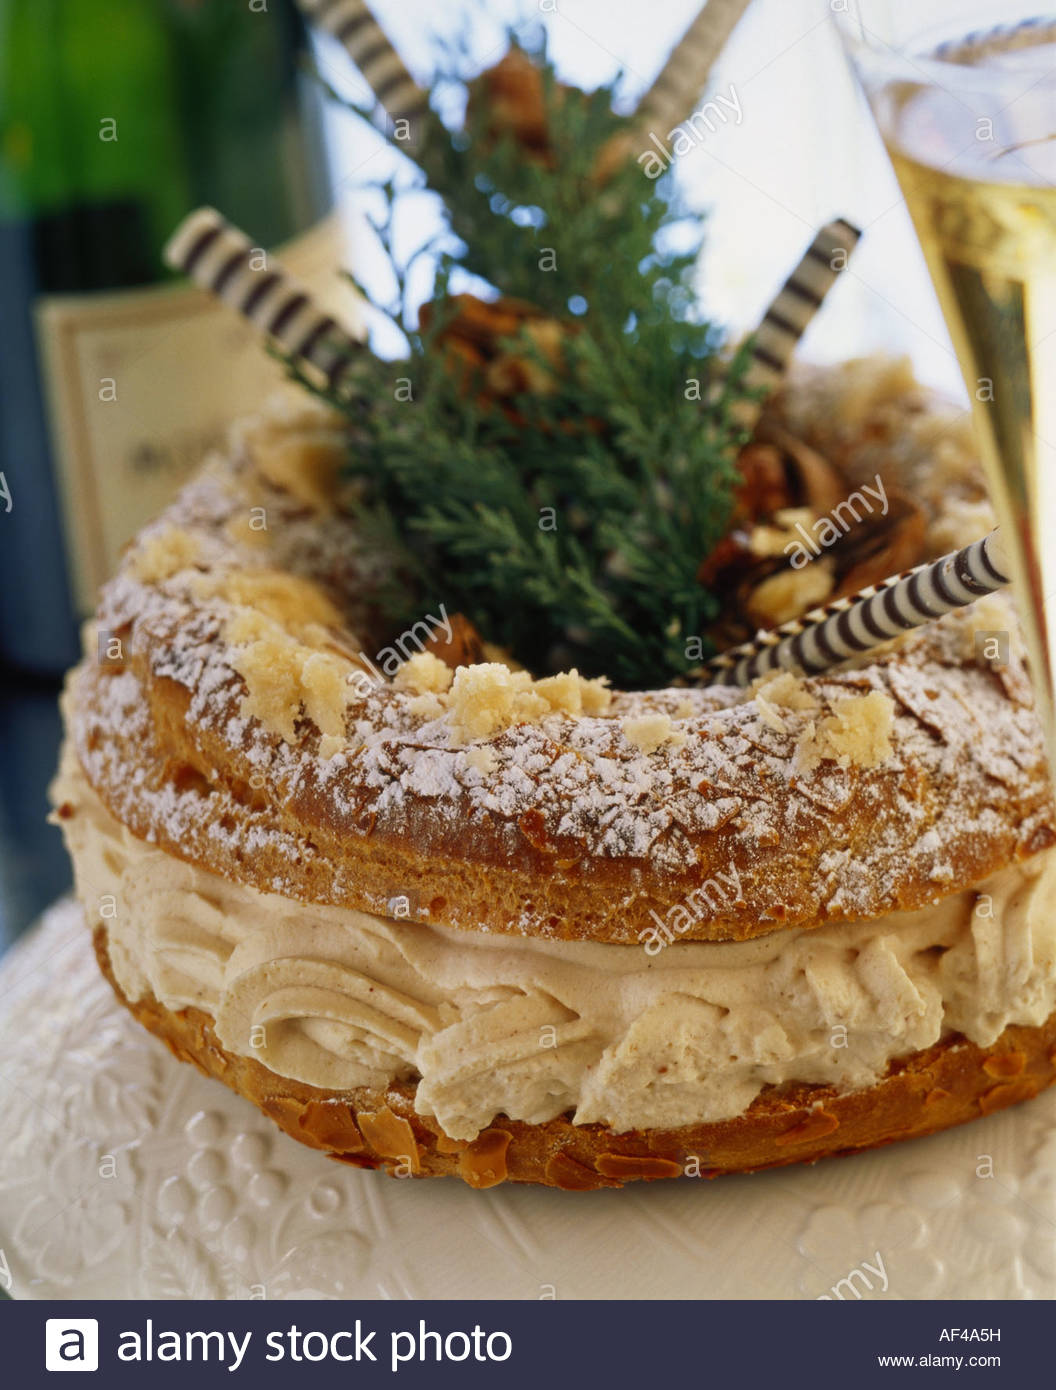 Paris Brest (choux pastry with mocha filling, France) Stock Photo